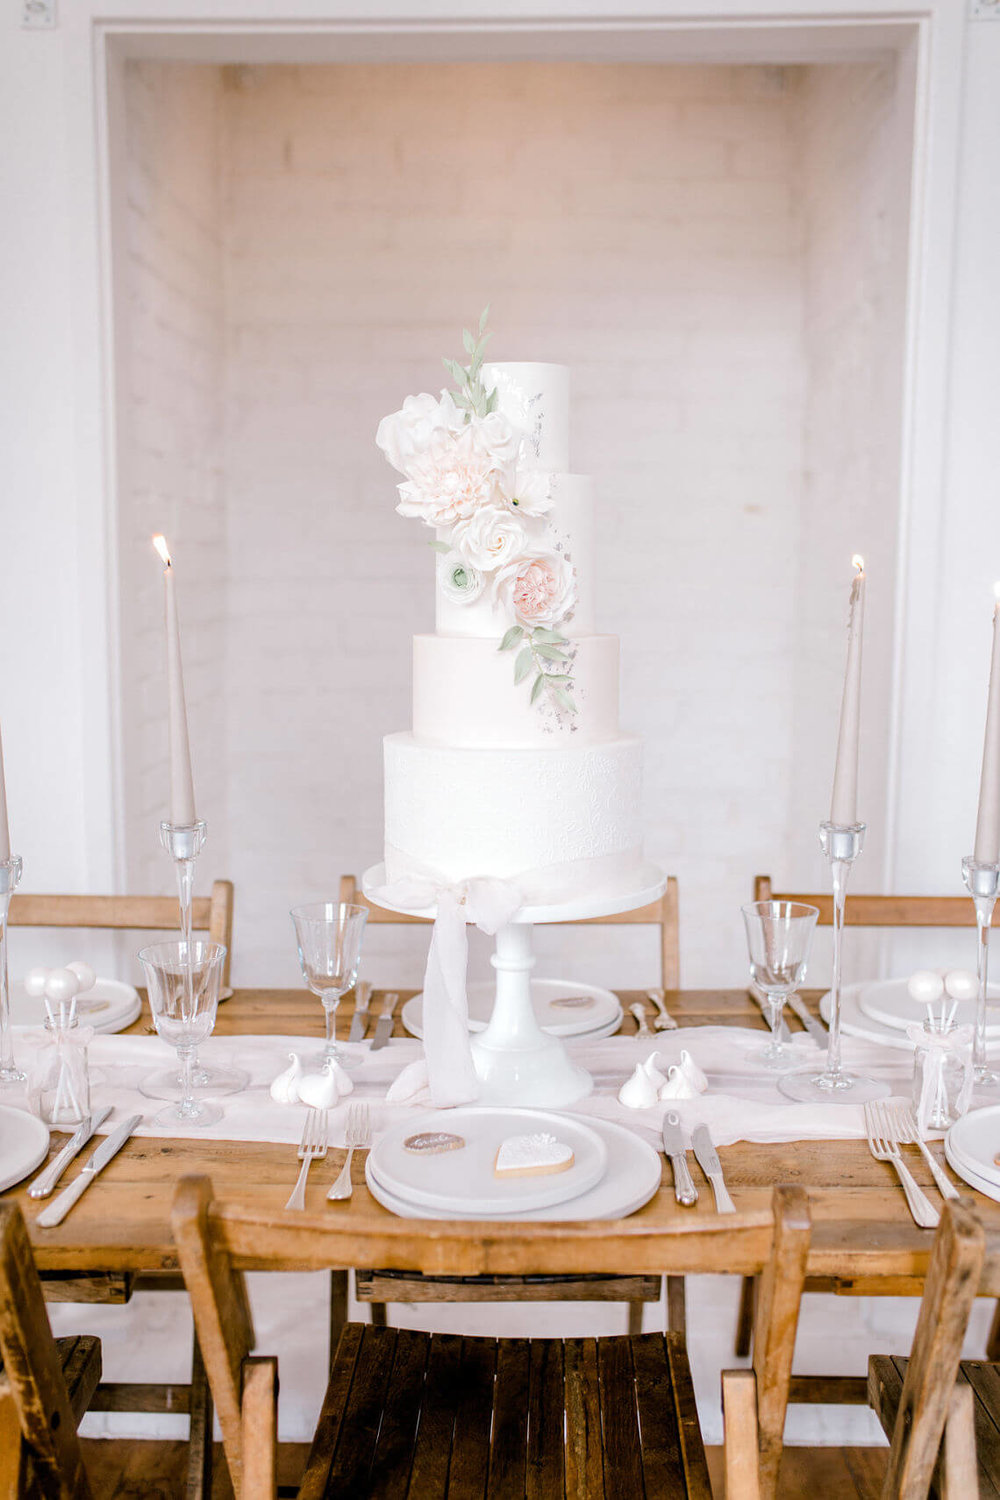 essex-wedding-cake-designer-neutral-romantic-cake-design.jpg